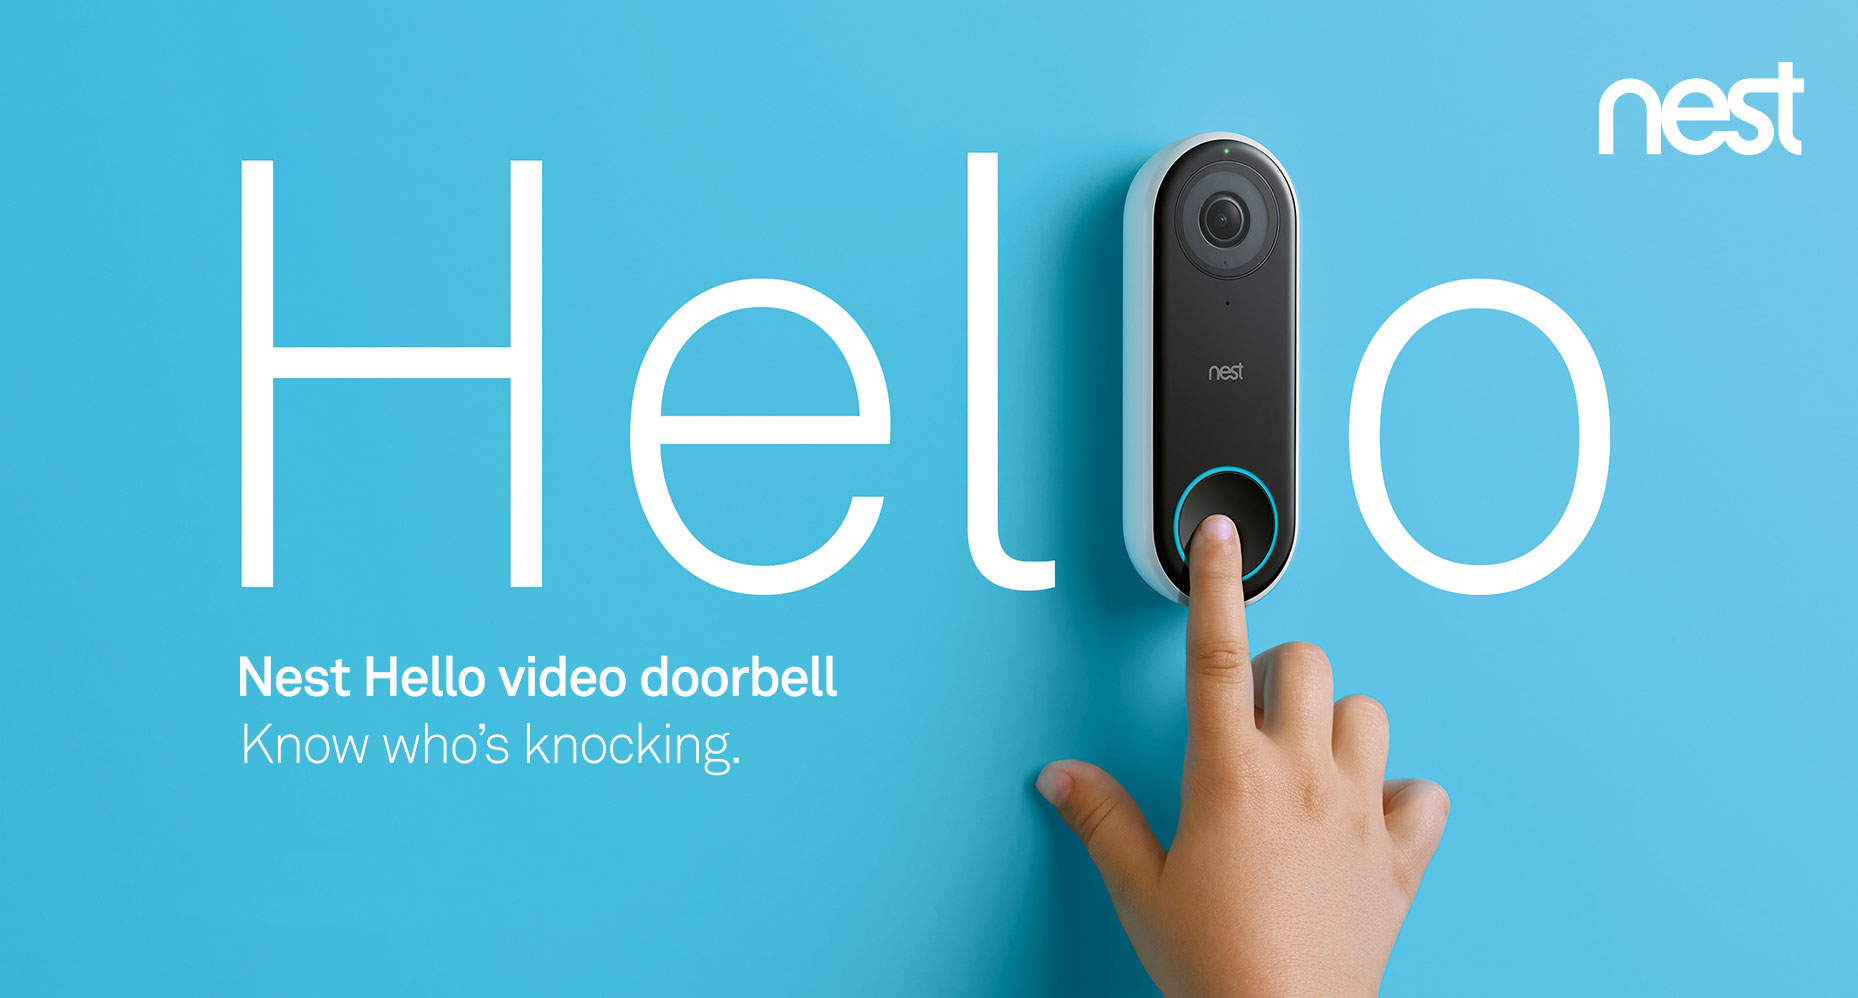 Nest Hello video doorbell pro installer